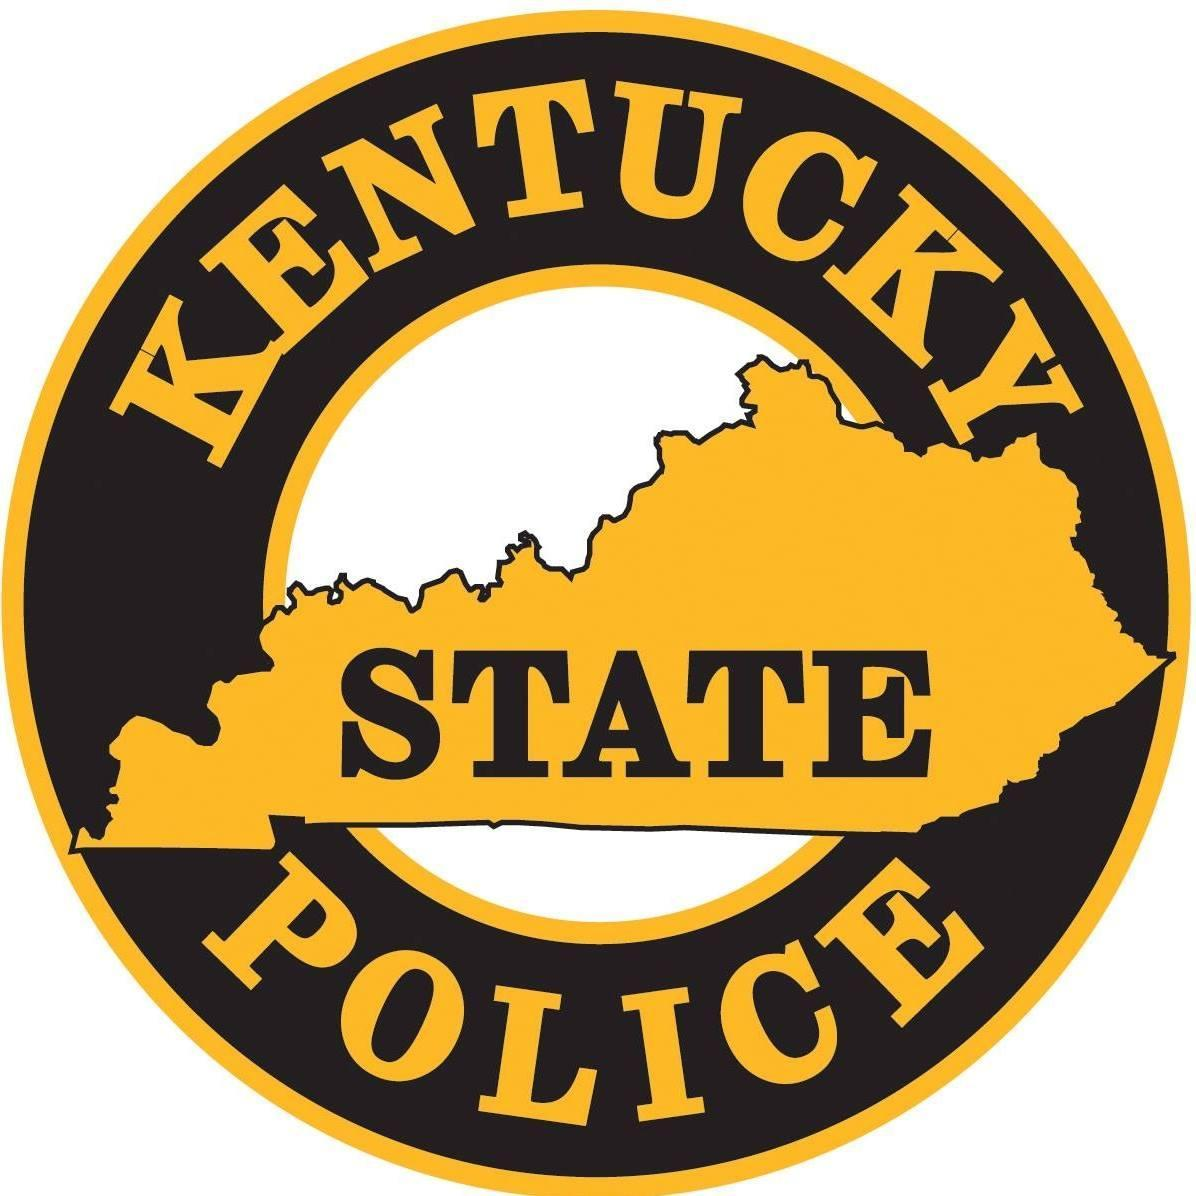 Traffic Safety Check Leads To Adair County Drug Arrest